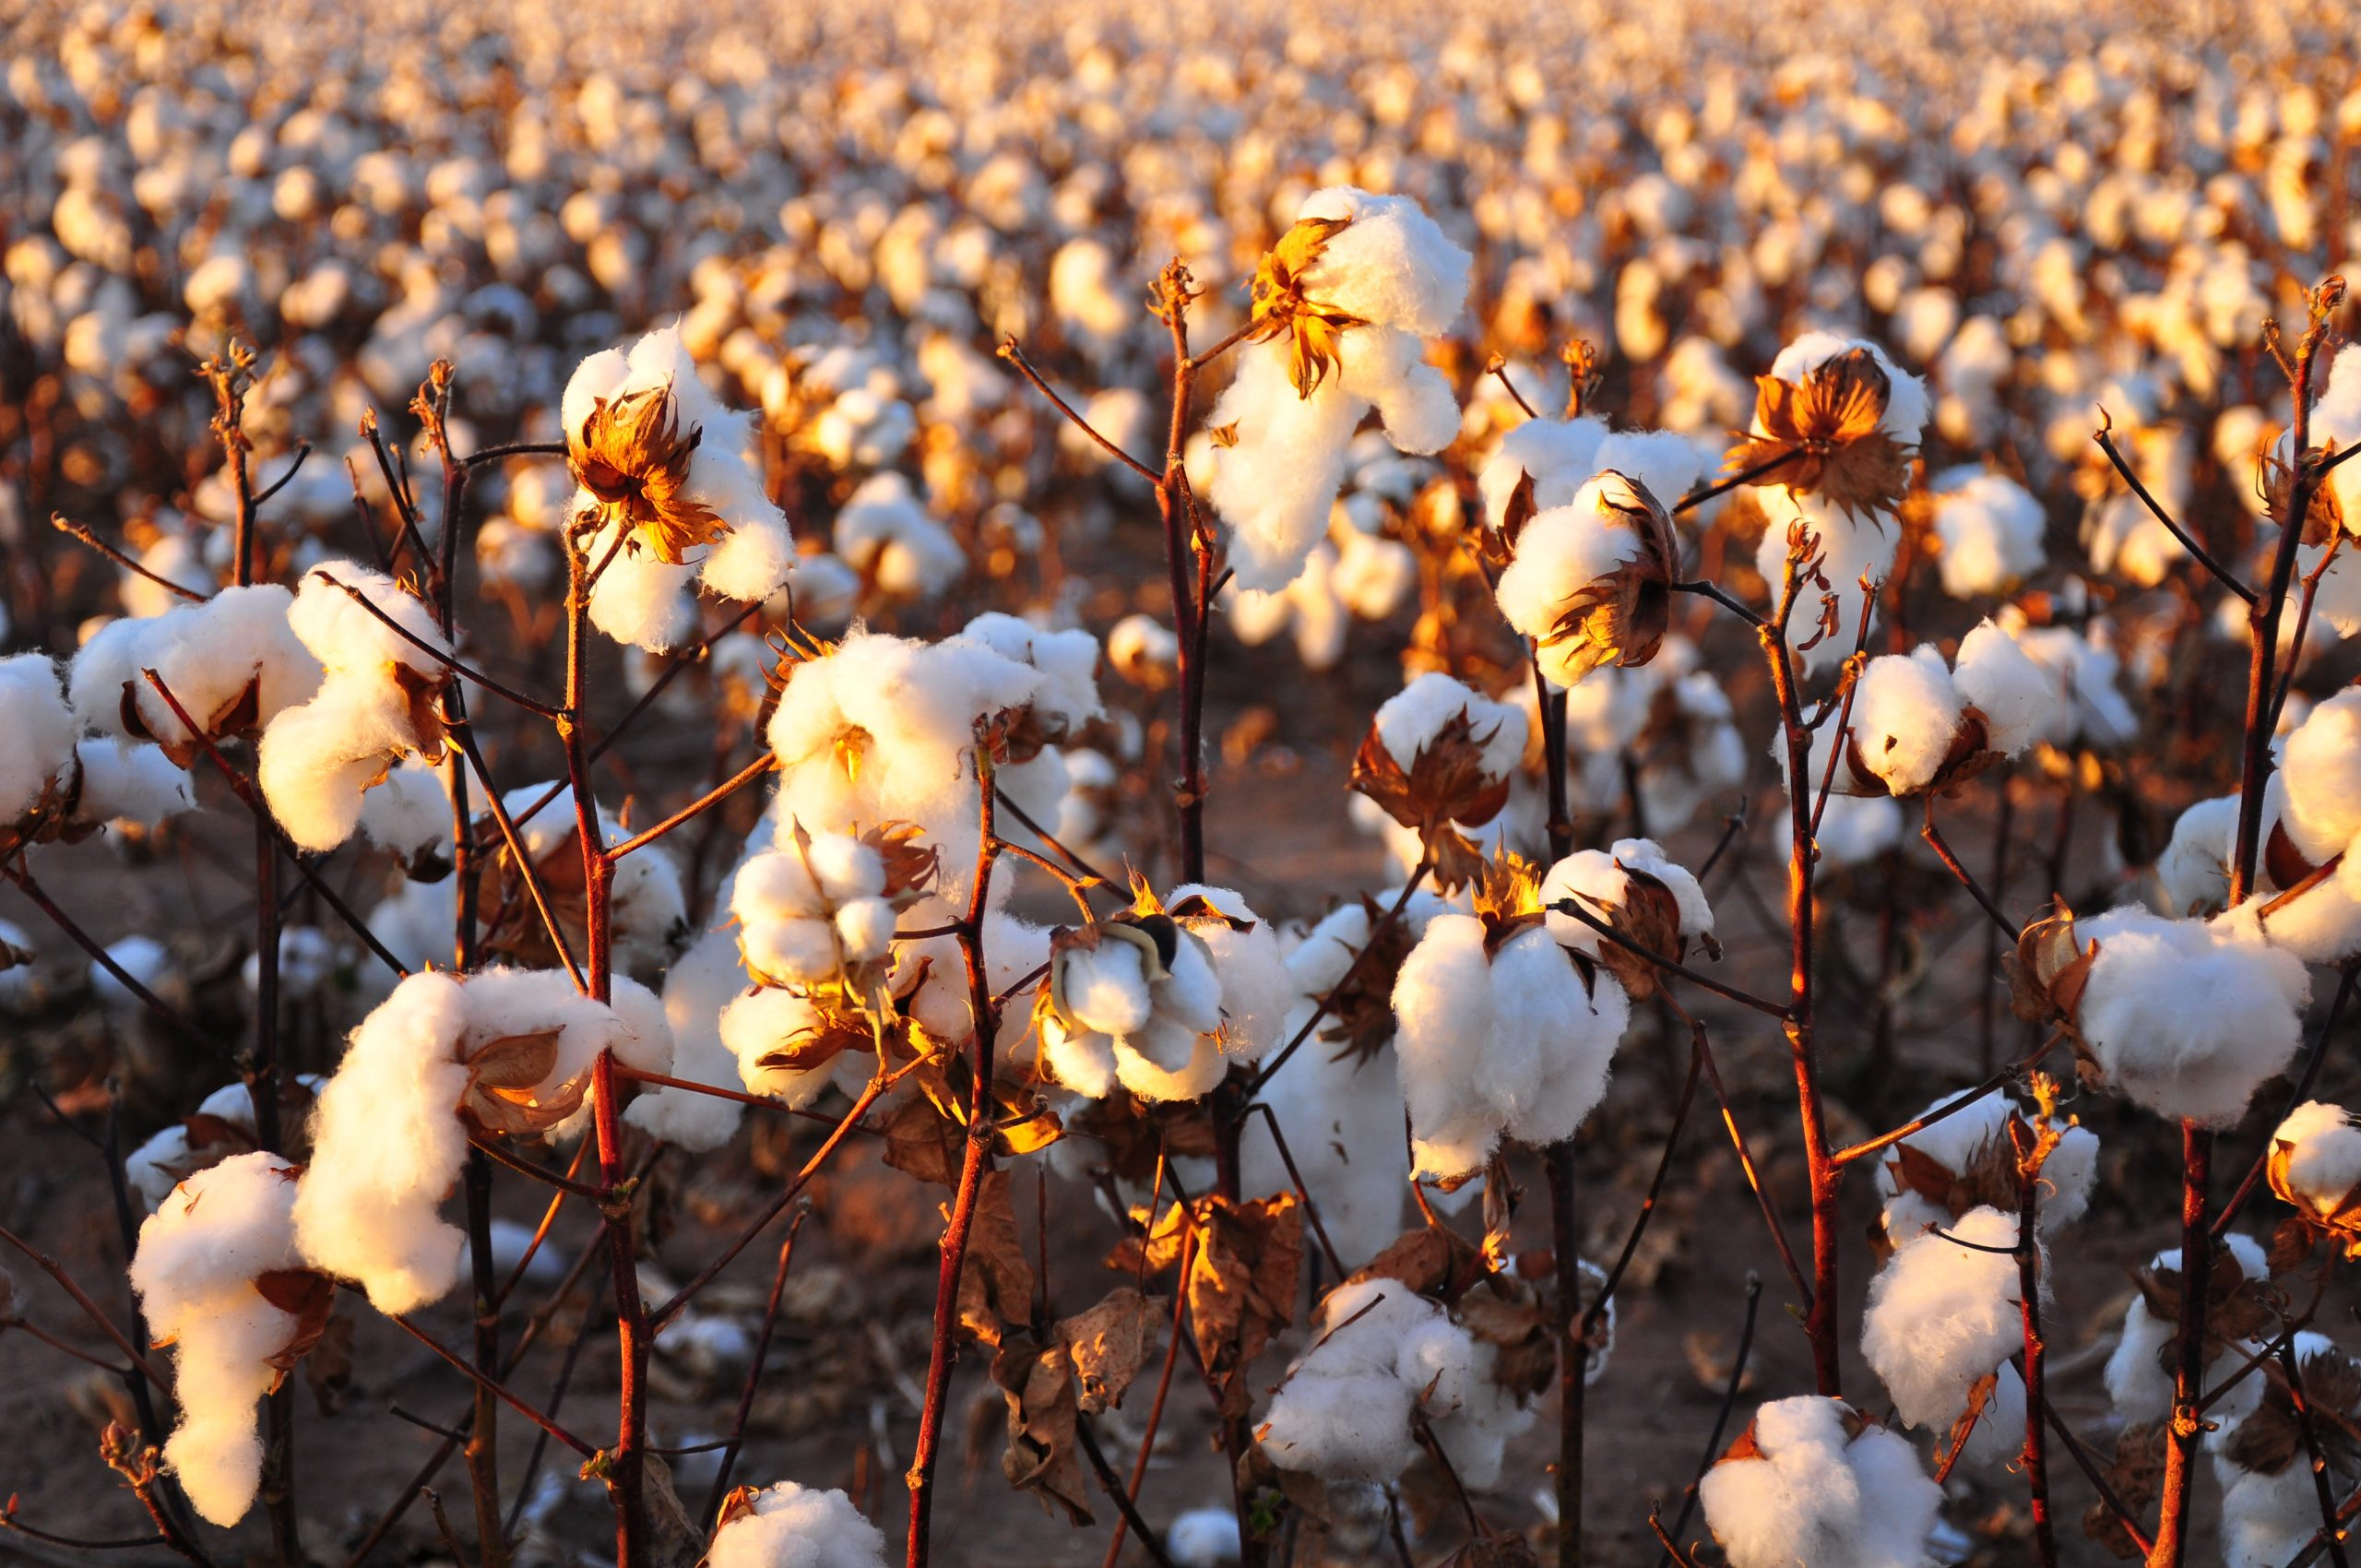 The CBN Will Assist in the Cultivation of 80,000 Hectares of Cotton